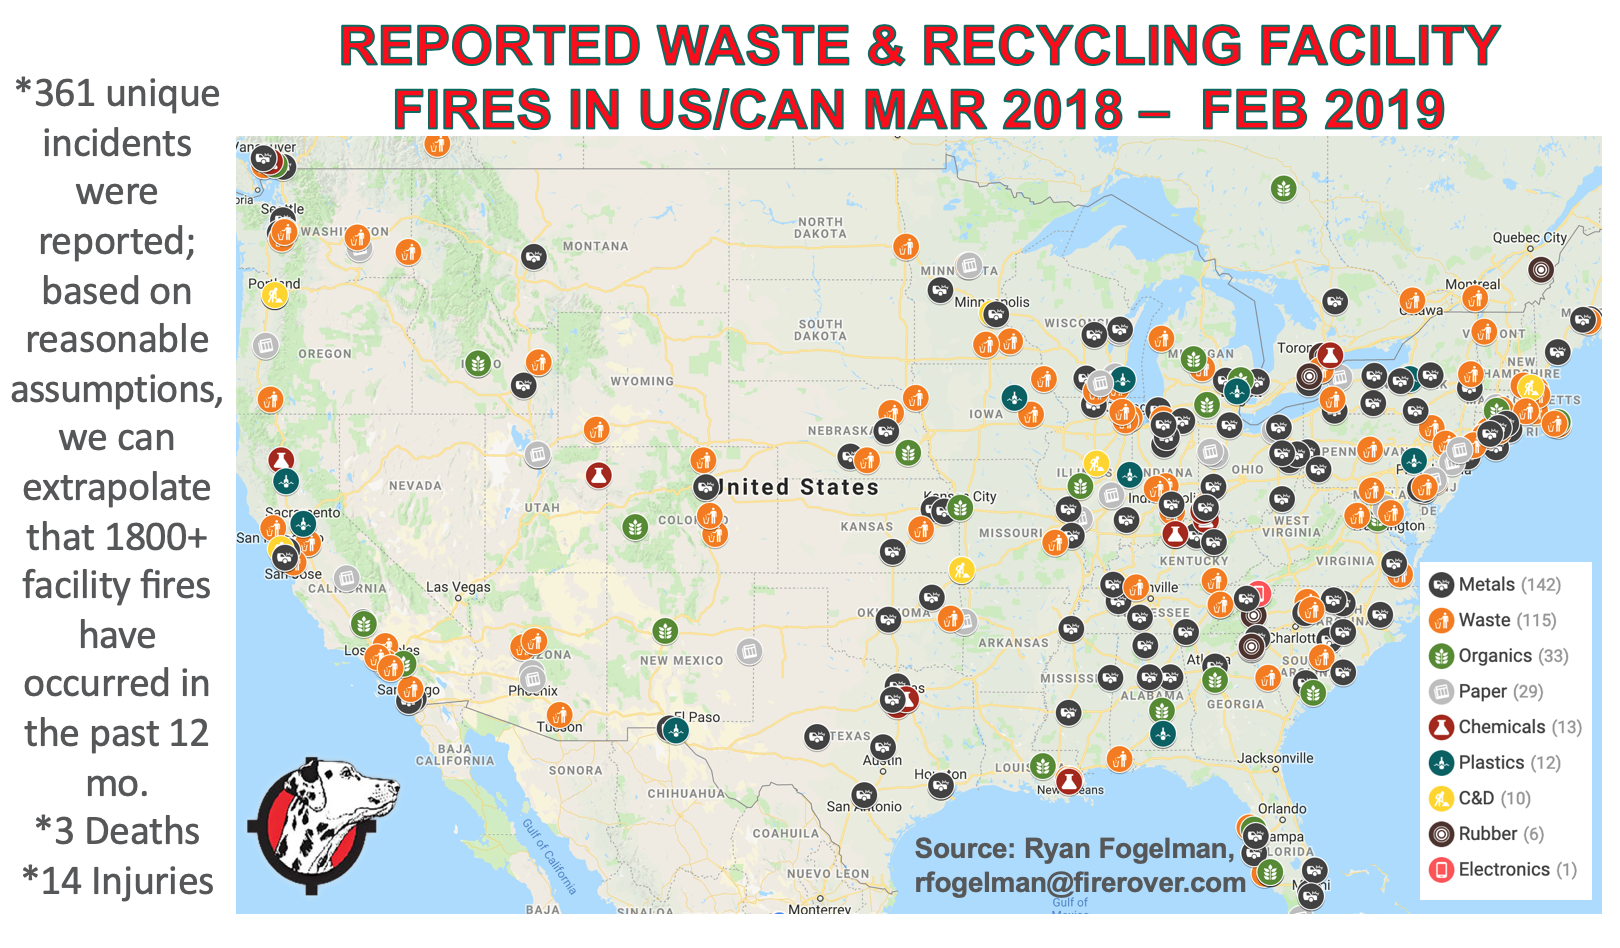 Reported-Waste-Recycling-firesMap-Feb-2019.png